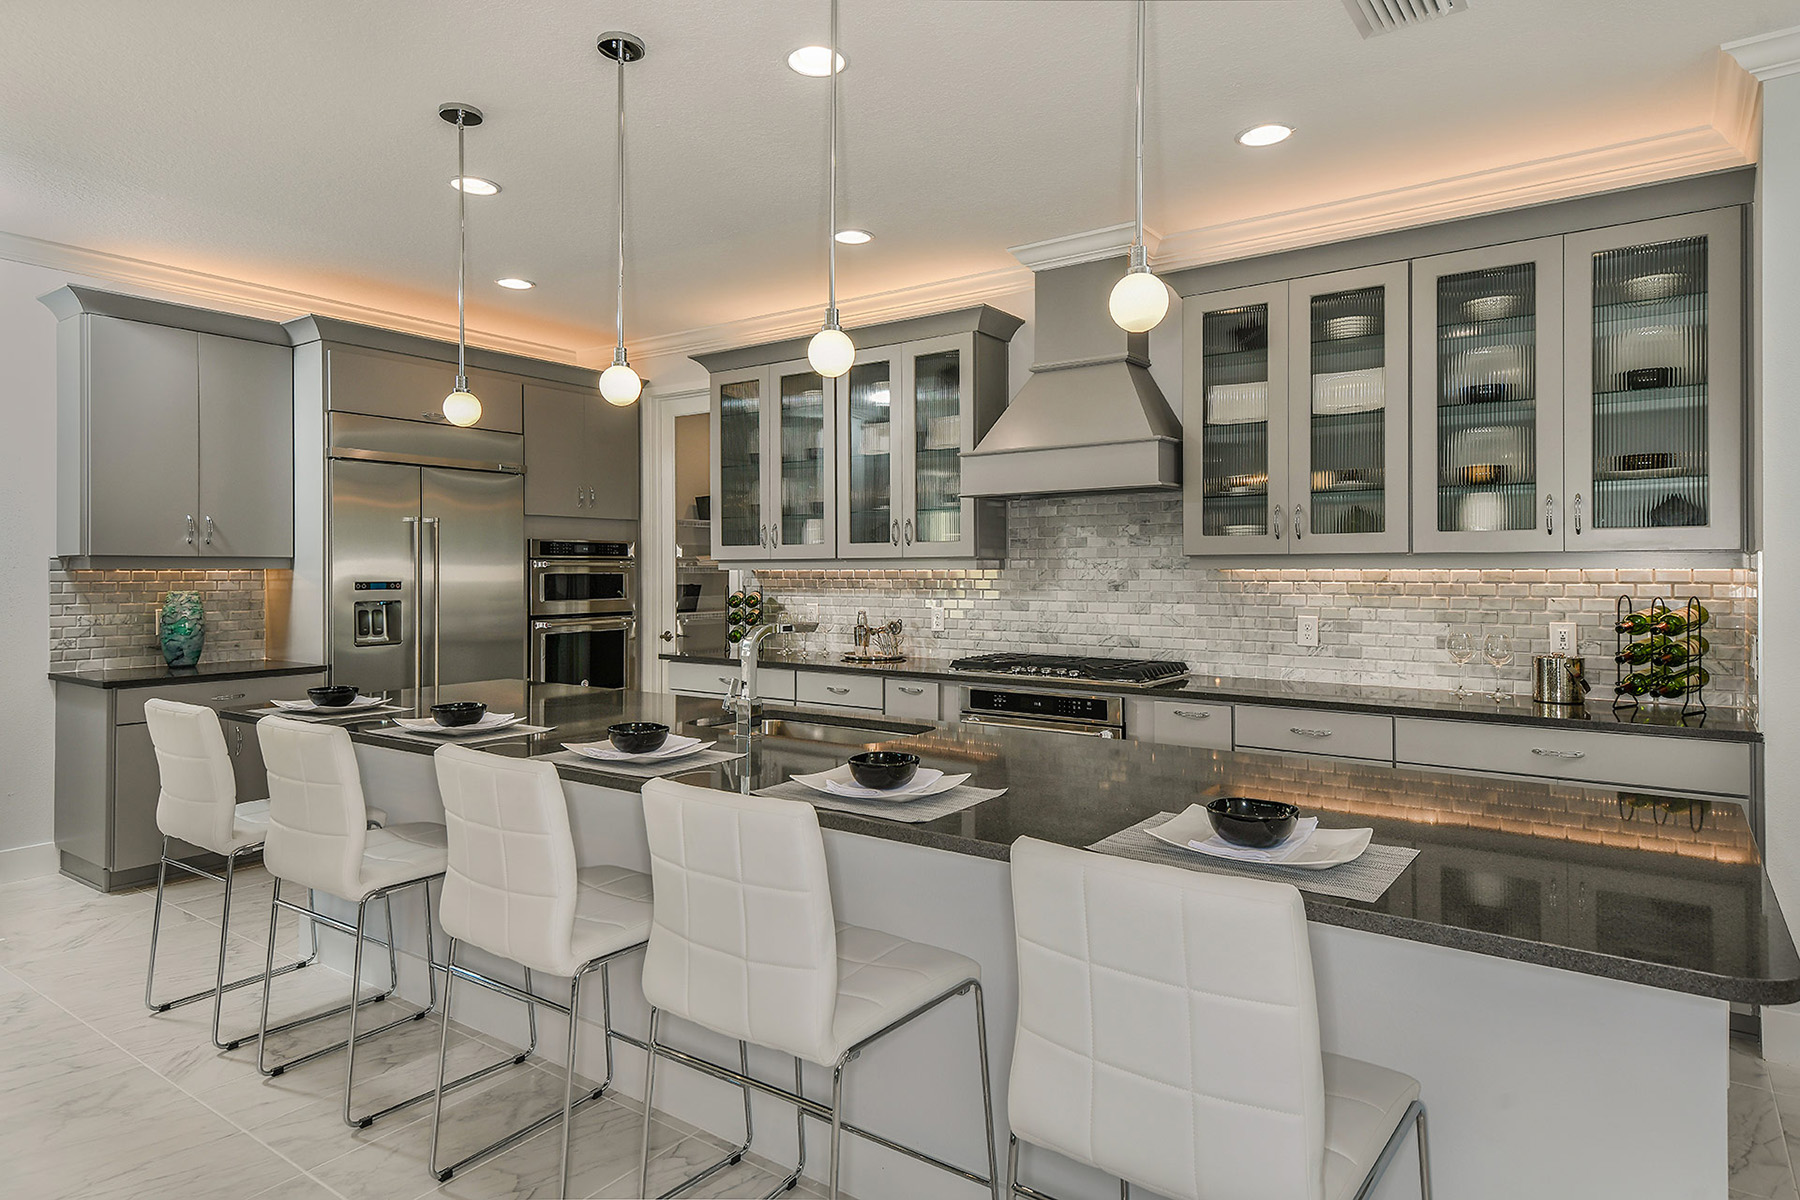 Alee Plan Kitchen at Compass Landing in Naples Florida by Mattamy Homes